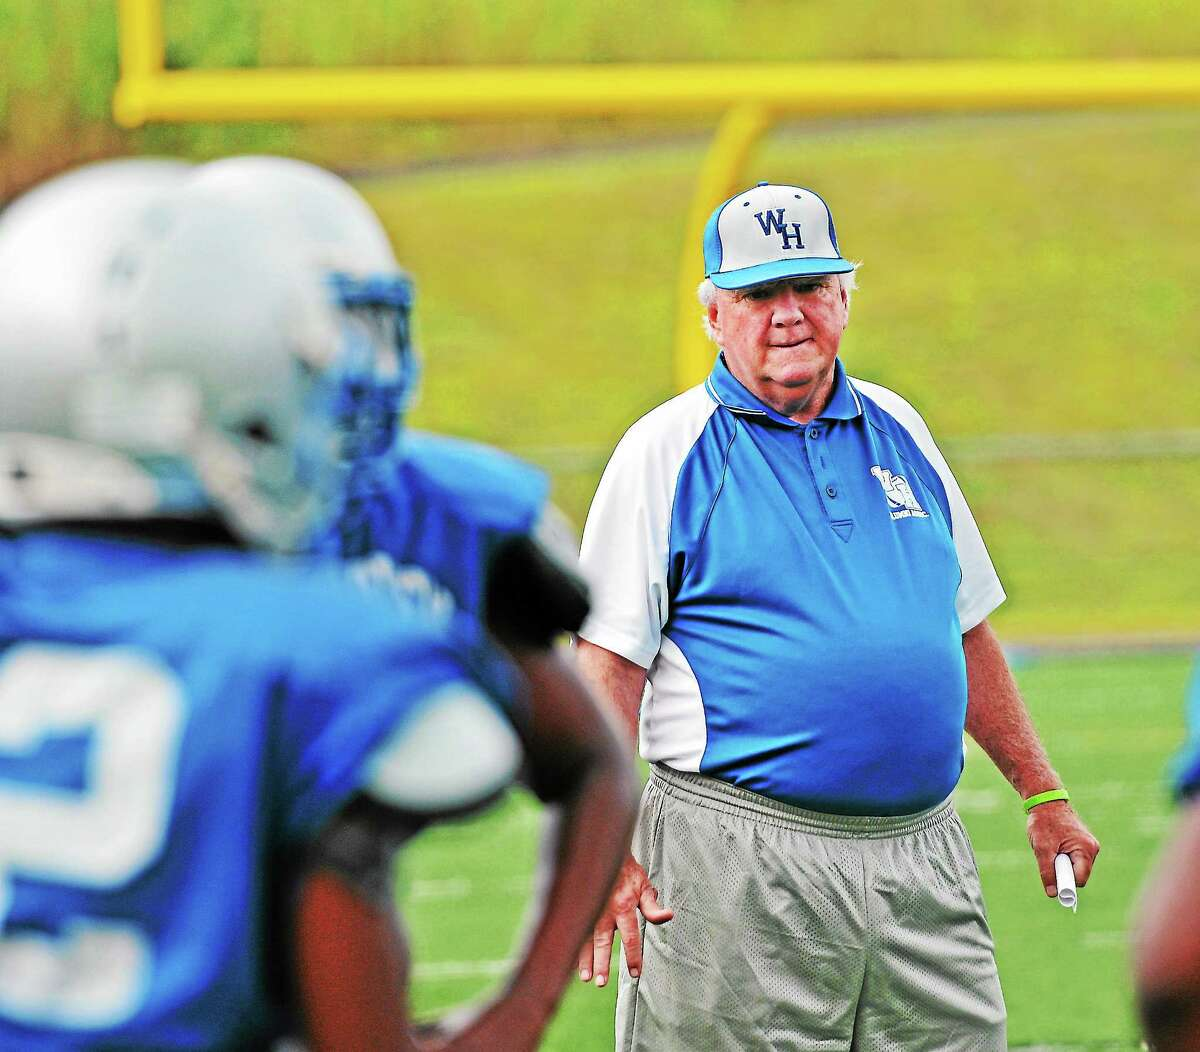 (Peter Casolino — New Haven Register) West Haven high school football coach Ed McCarthy is on the verge of becoming the career coaching leader in Connecticut history.